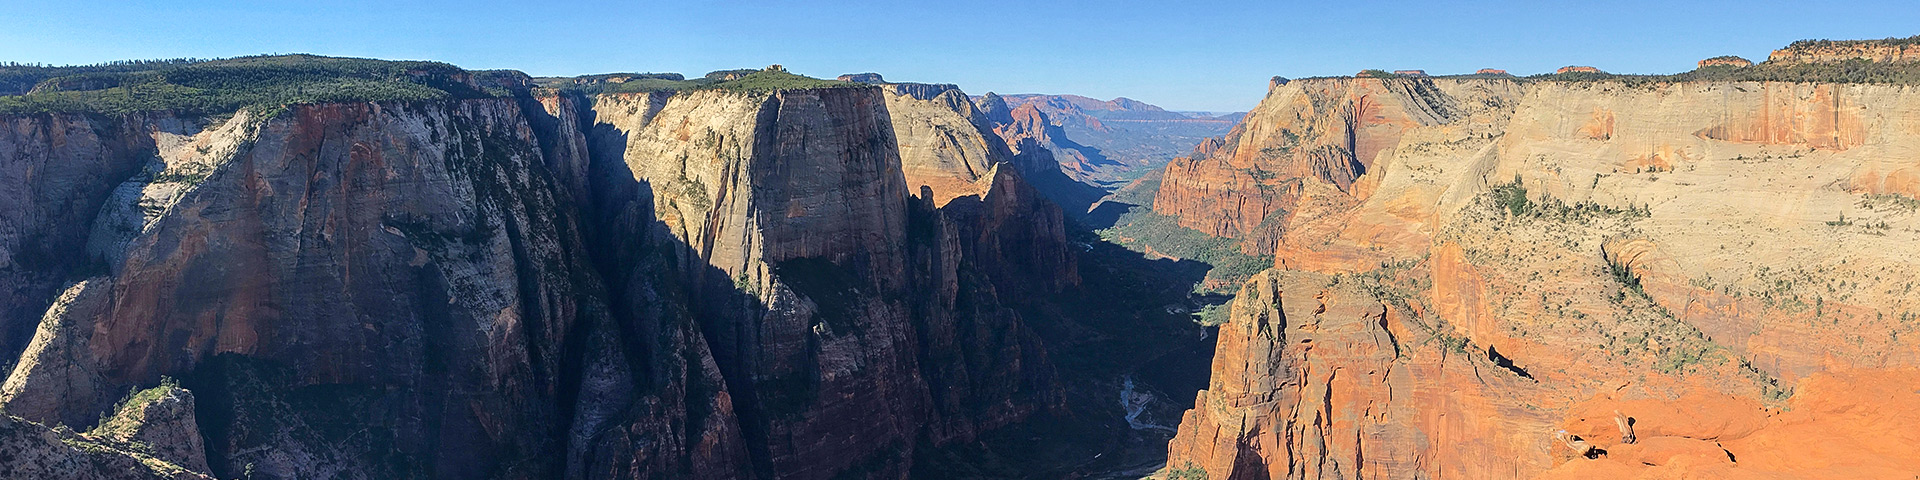 Observation Point hike in Zion National Park